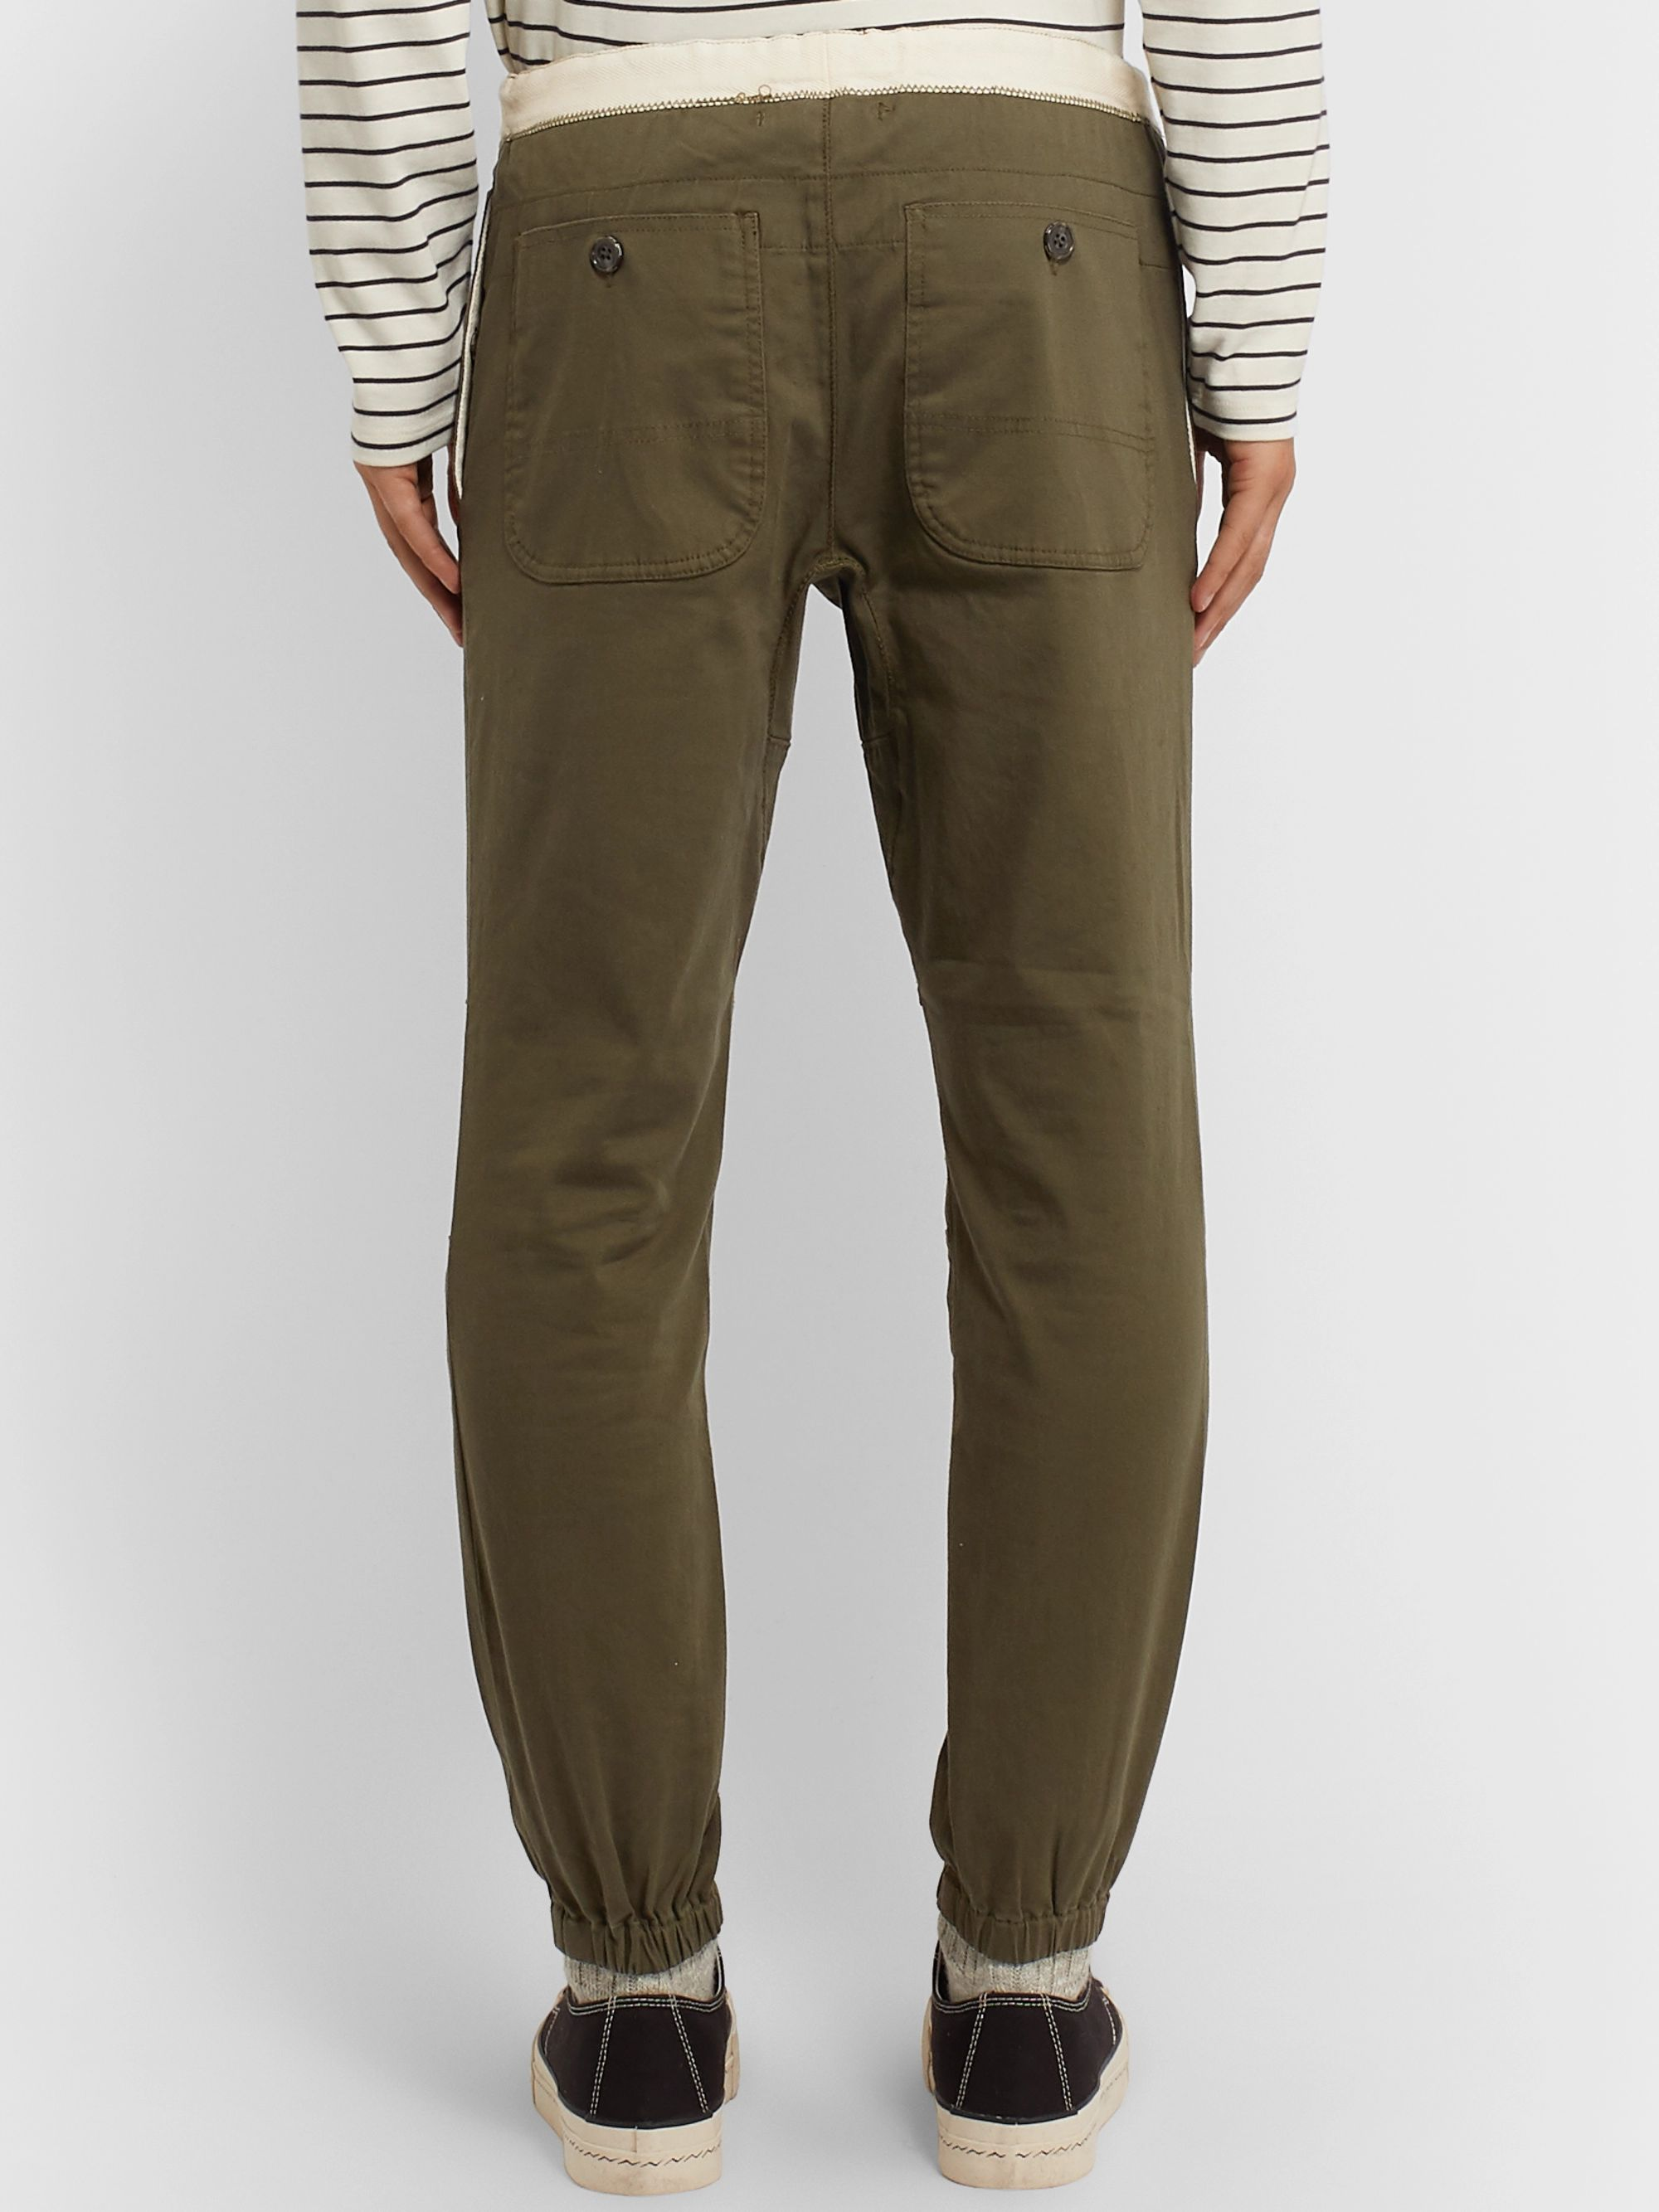 Beams Plus Slim-Fit Tapered Grosgrain-Trimmed Cotton-Blend Twill Drawstring Trousers